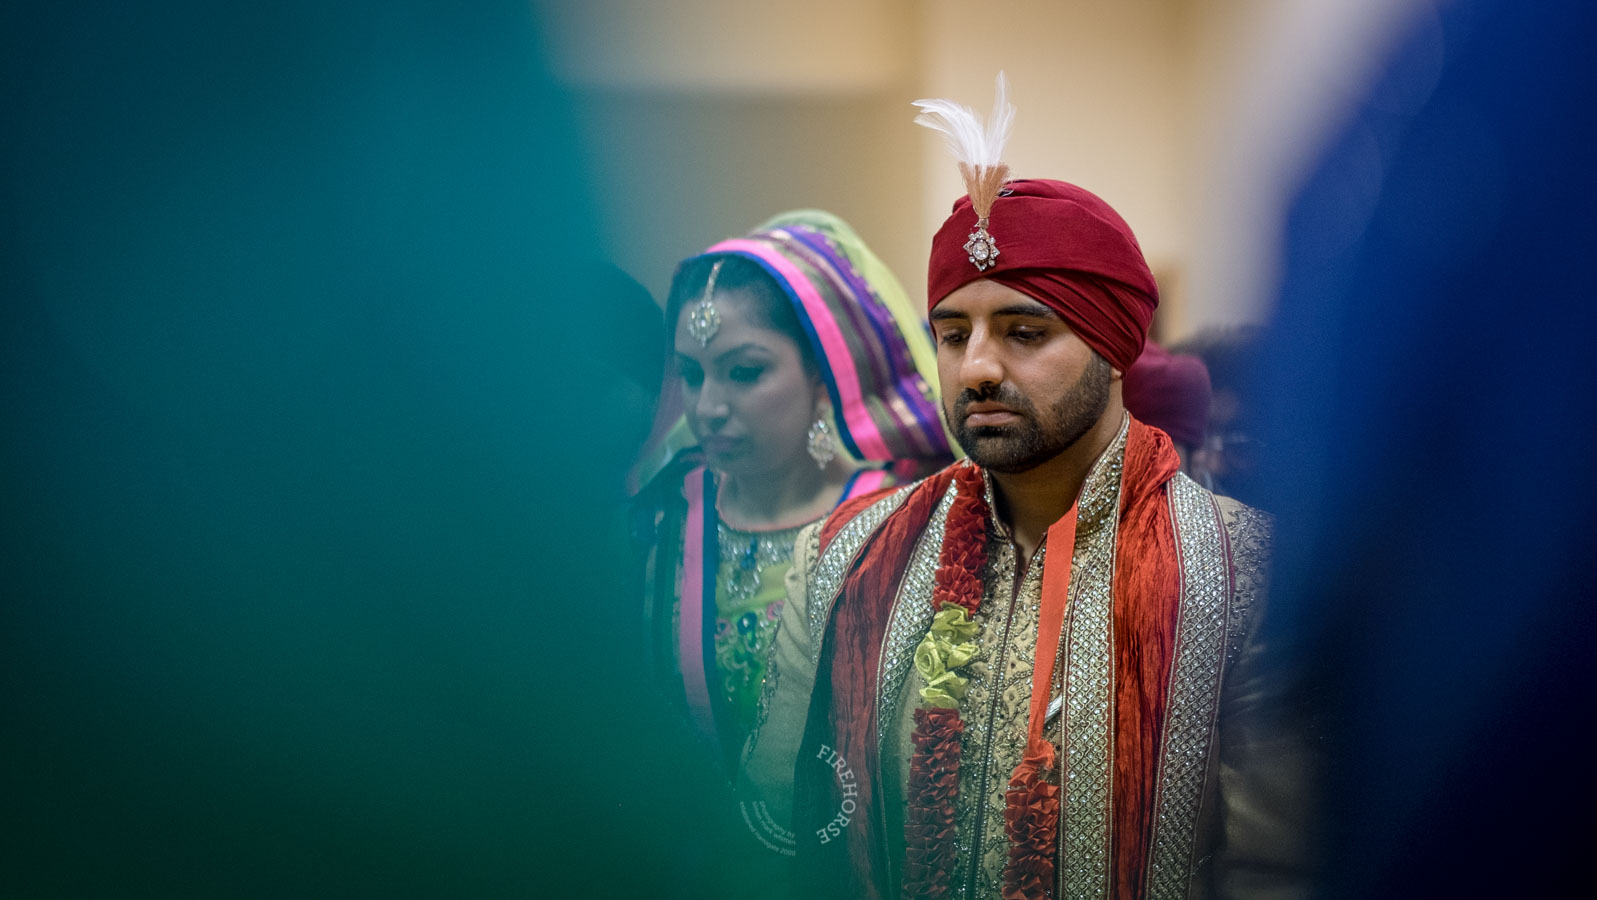 sikh-wedding-photography-023